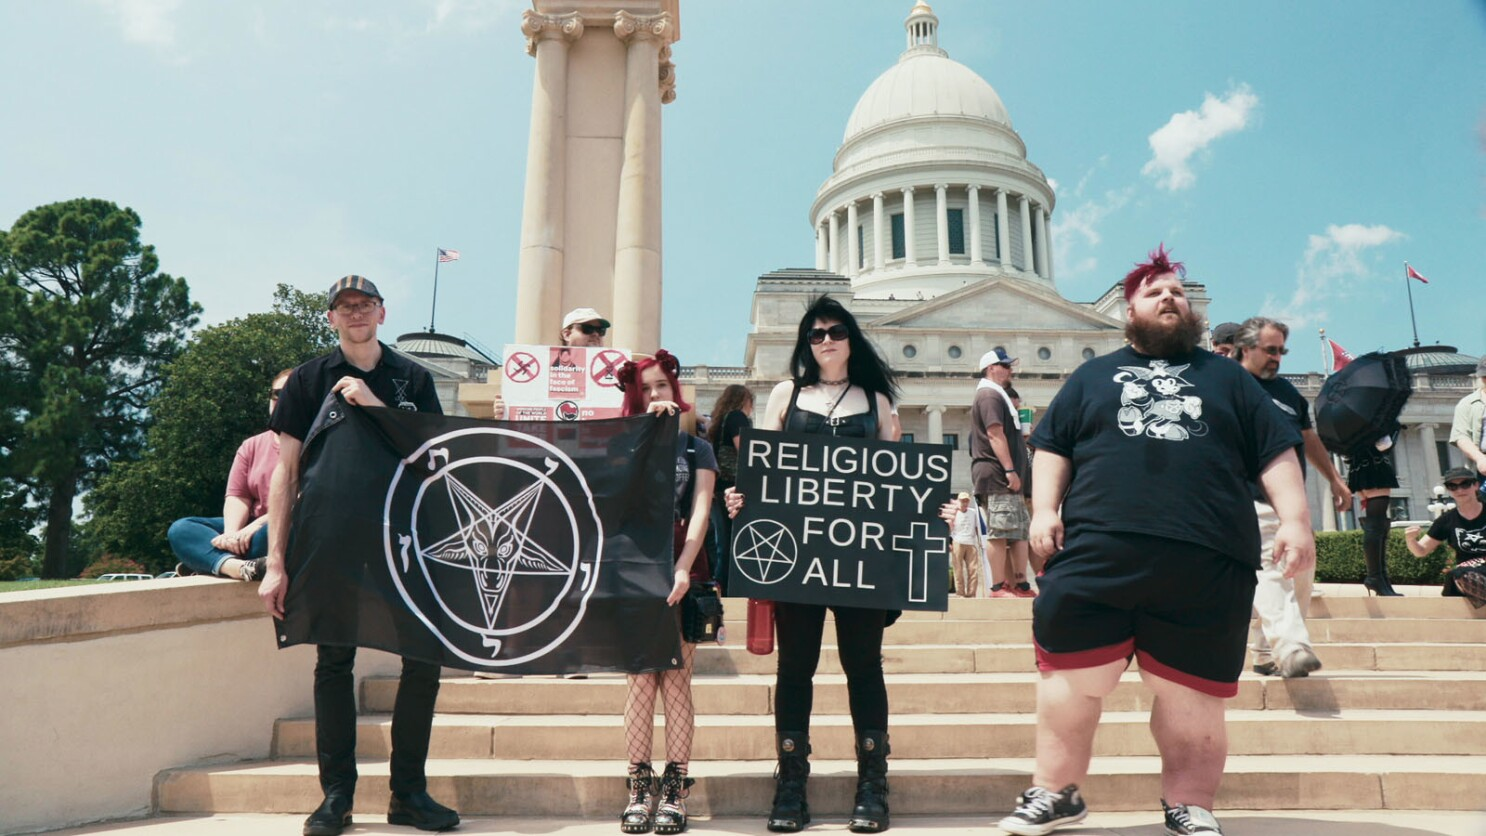 Review: 'Hail Satan?' offers cheeky insight into the Satanic Temple - The San Diego Union-Tribune